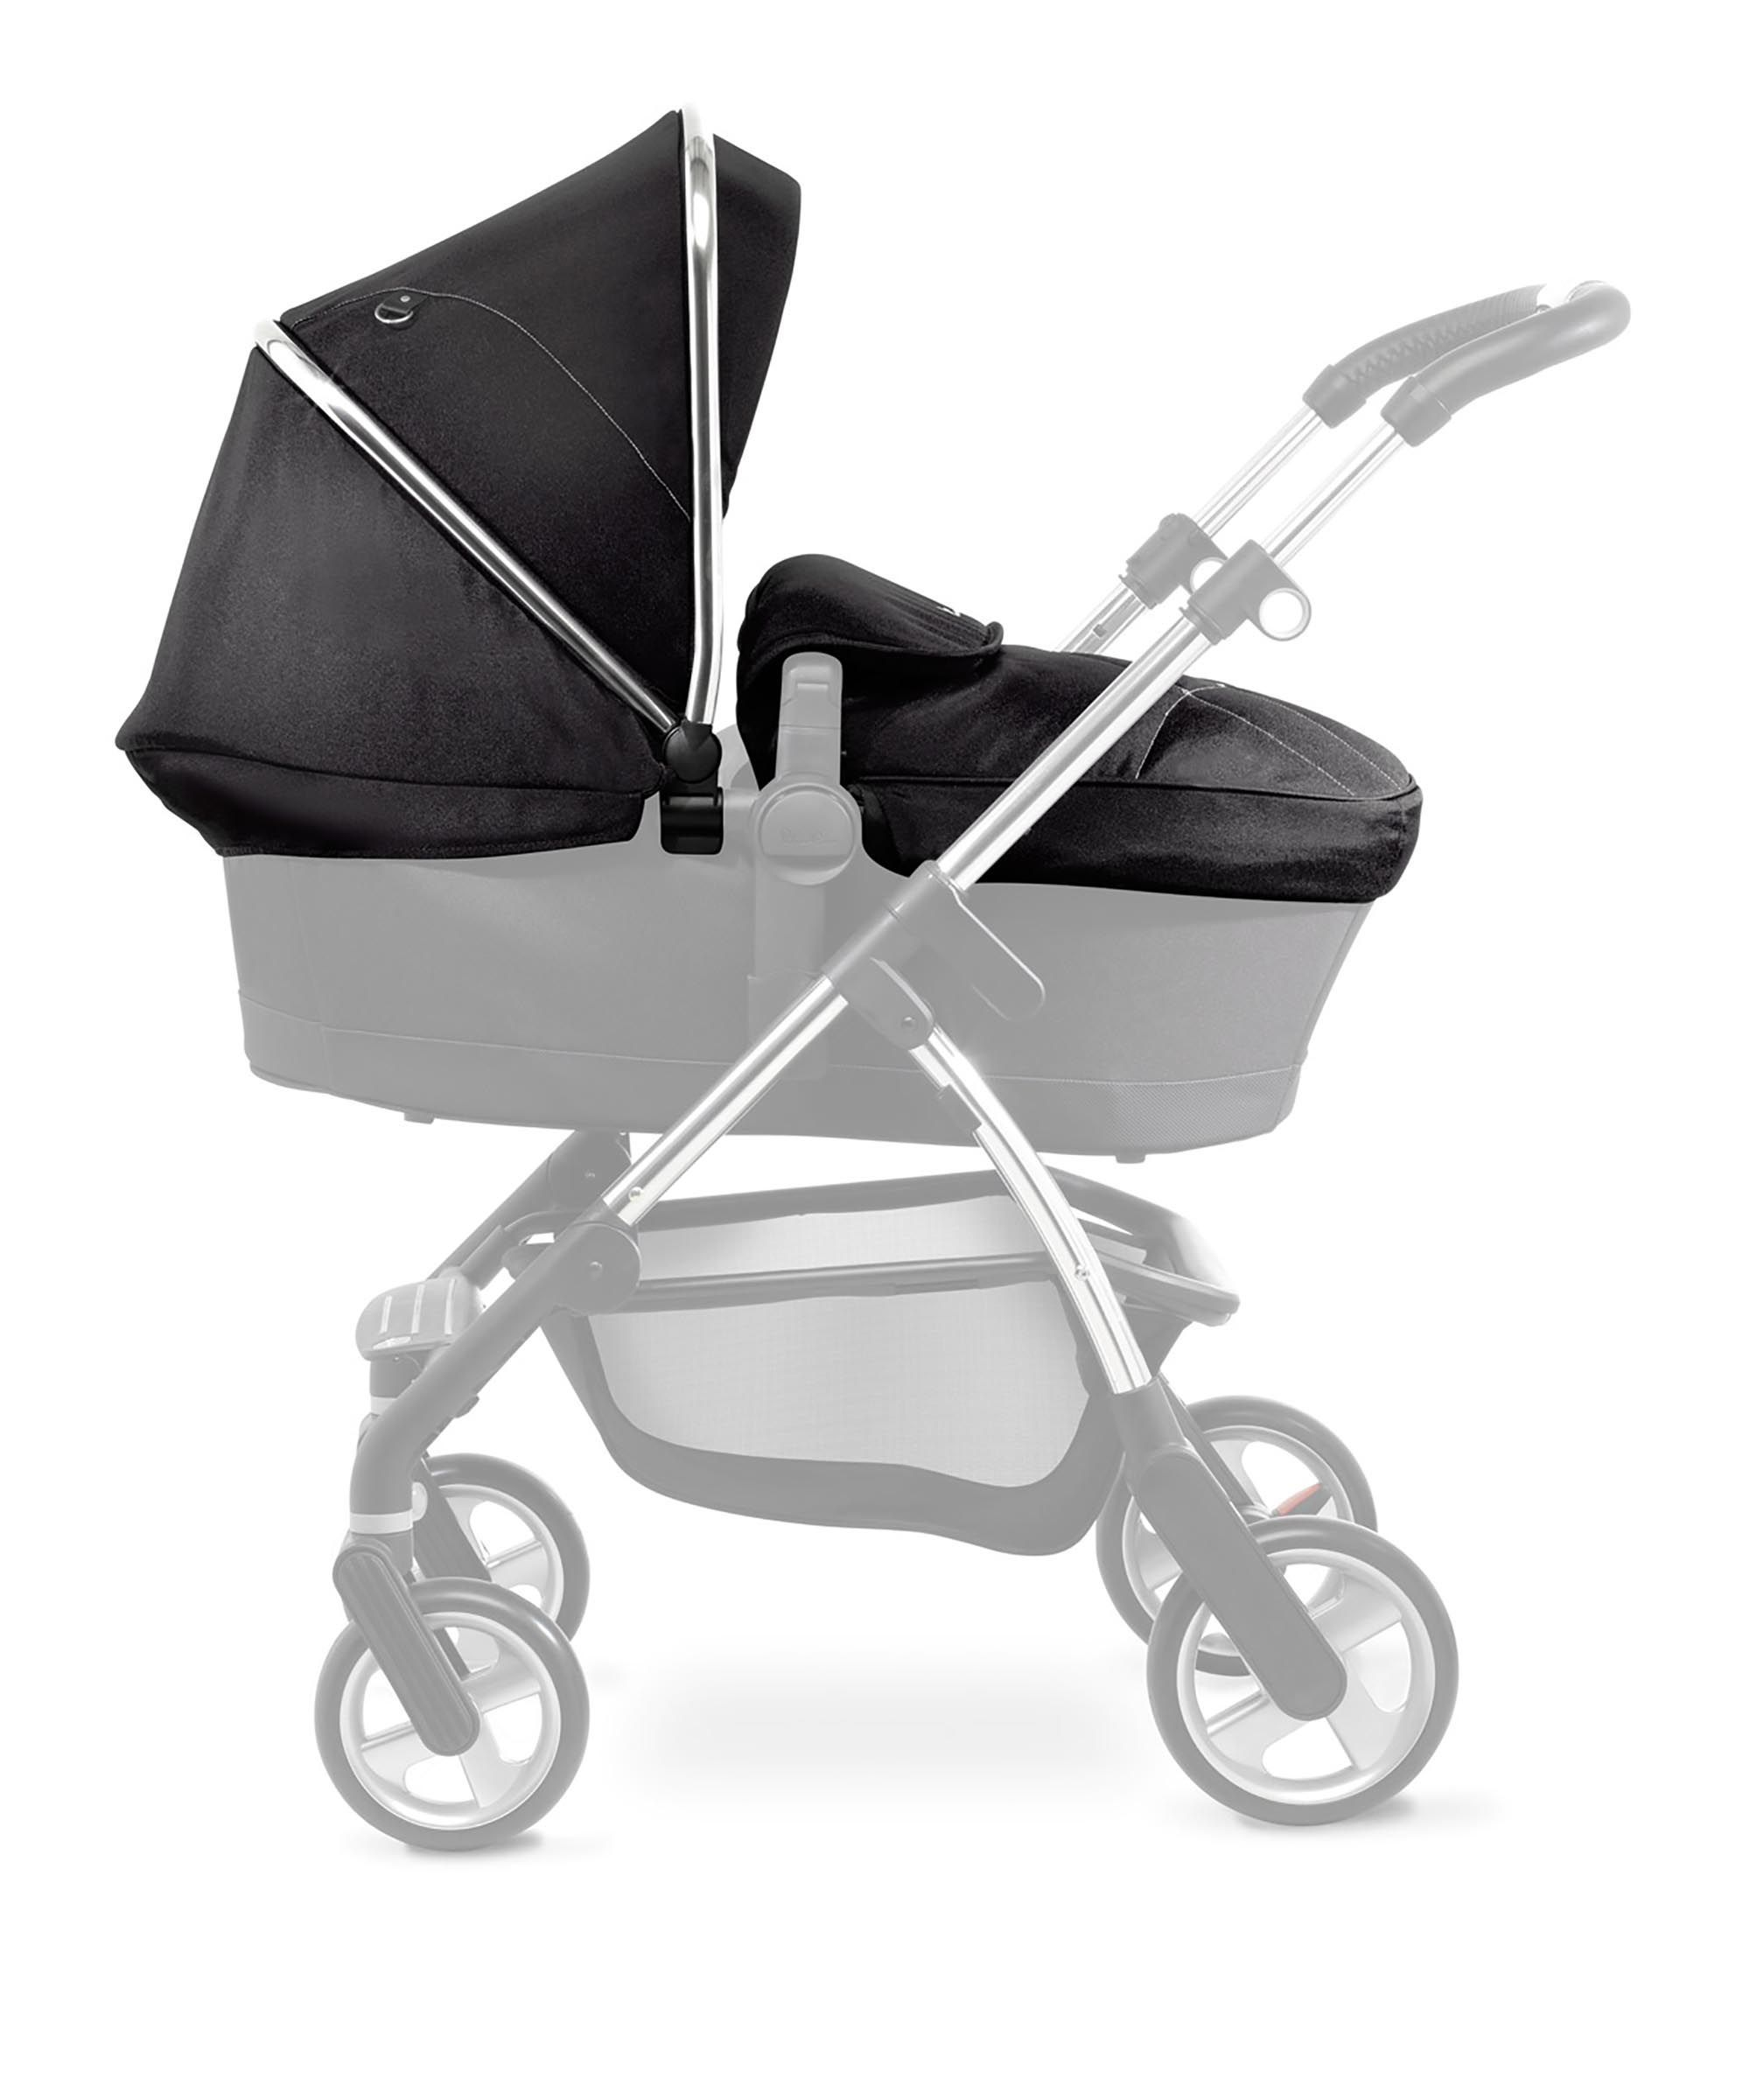 Mothercare Nautical Bedding: Baby Strollers, Baby